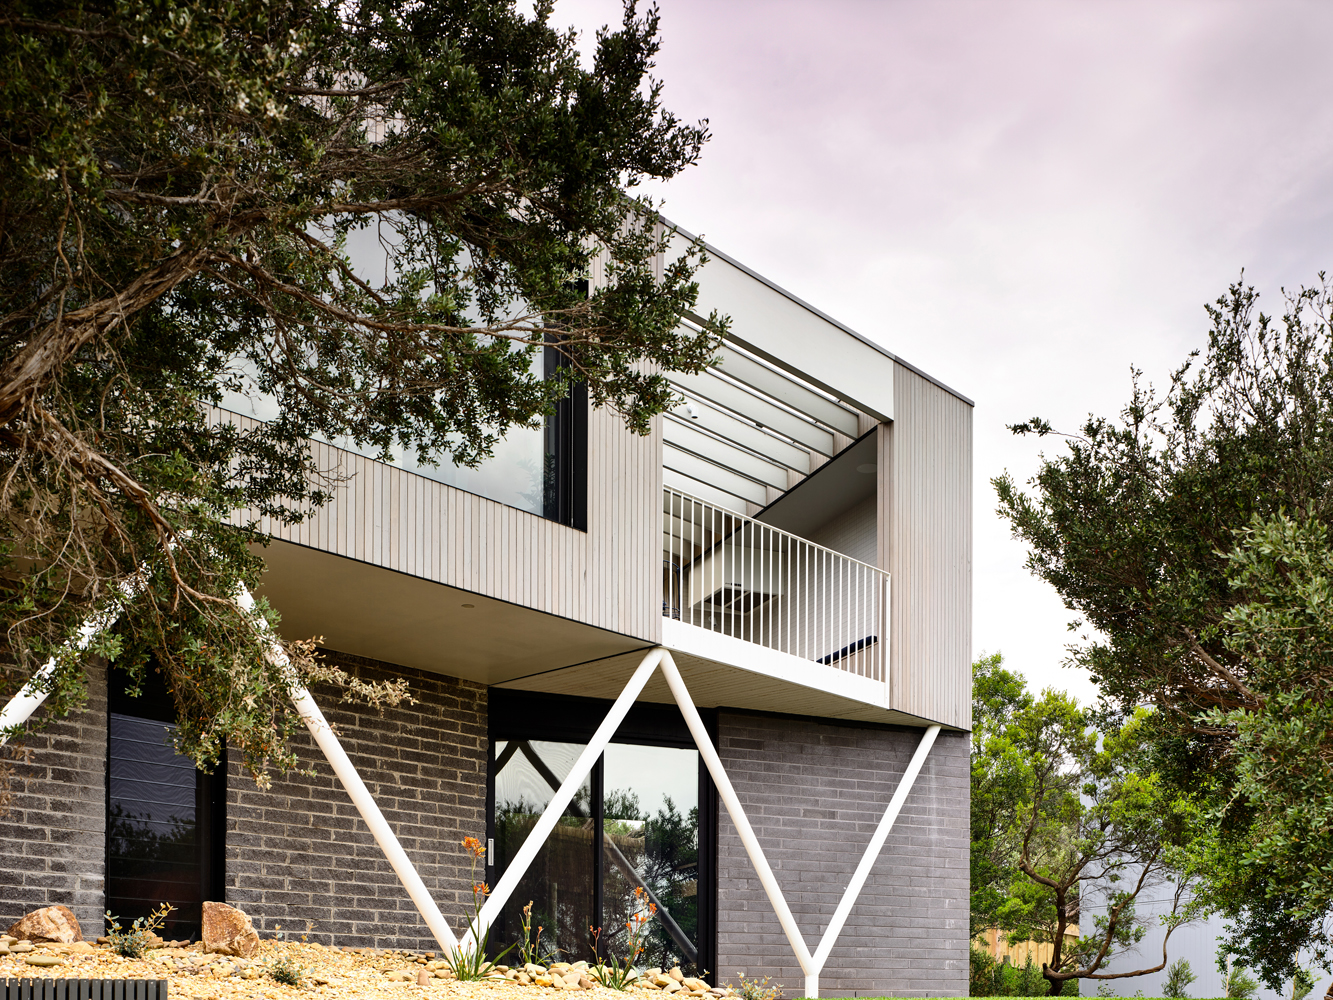 Completing The Evolution Of The Existing Building Into A Contemporary Dwelling.